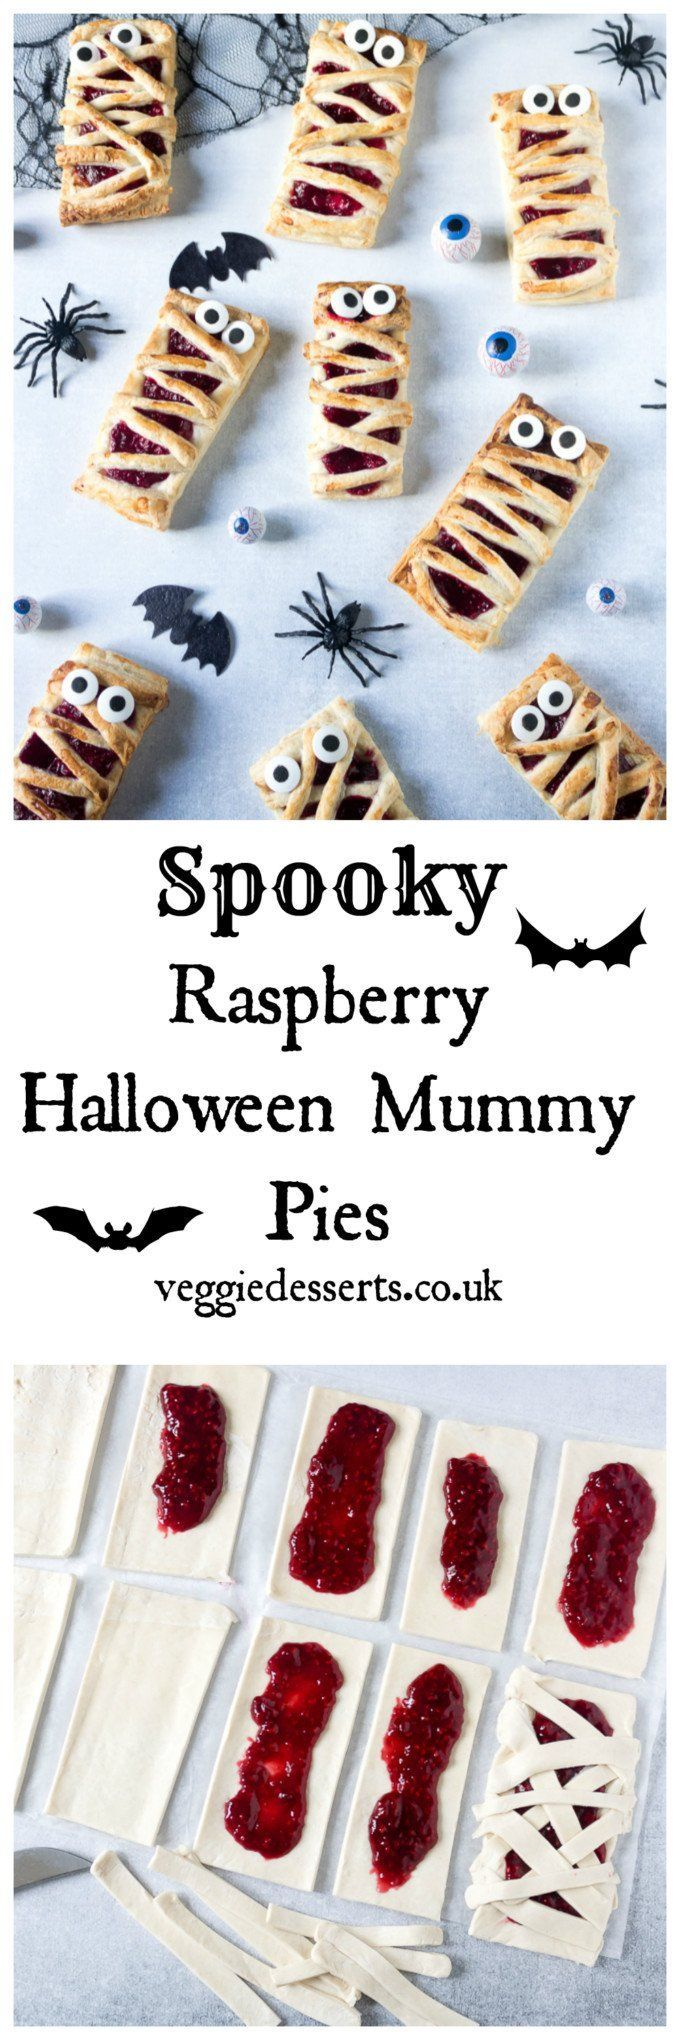 Try these easy 6-ingredient Raspberry Halloween Mummy Pies. Great fun to make with the kids, and super easy with store-bought puff pastry and frozen raspberries. Easily vegan and gluten free. Get the recipe at VeggieDesserts.co.uk #halloween #halloweenkids #halloweenmummy #halloweenparty